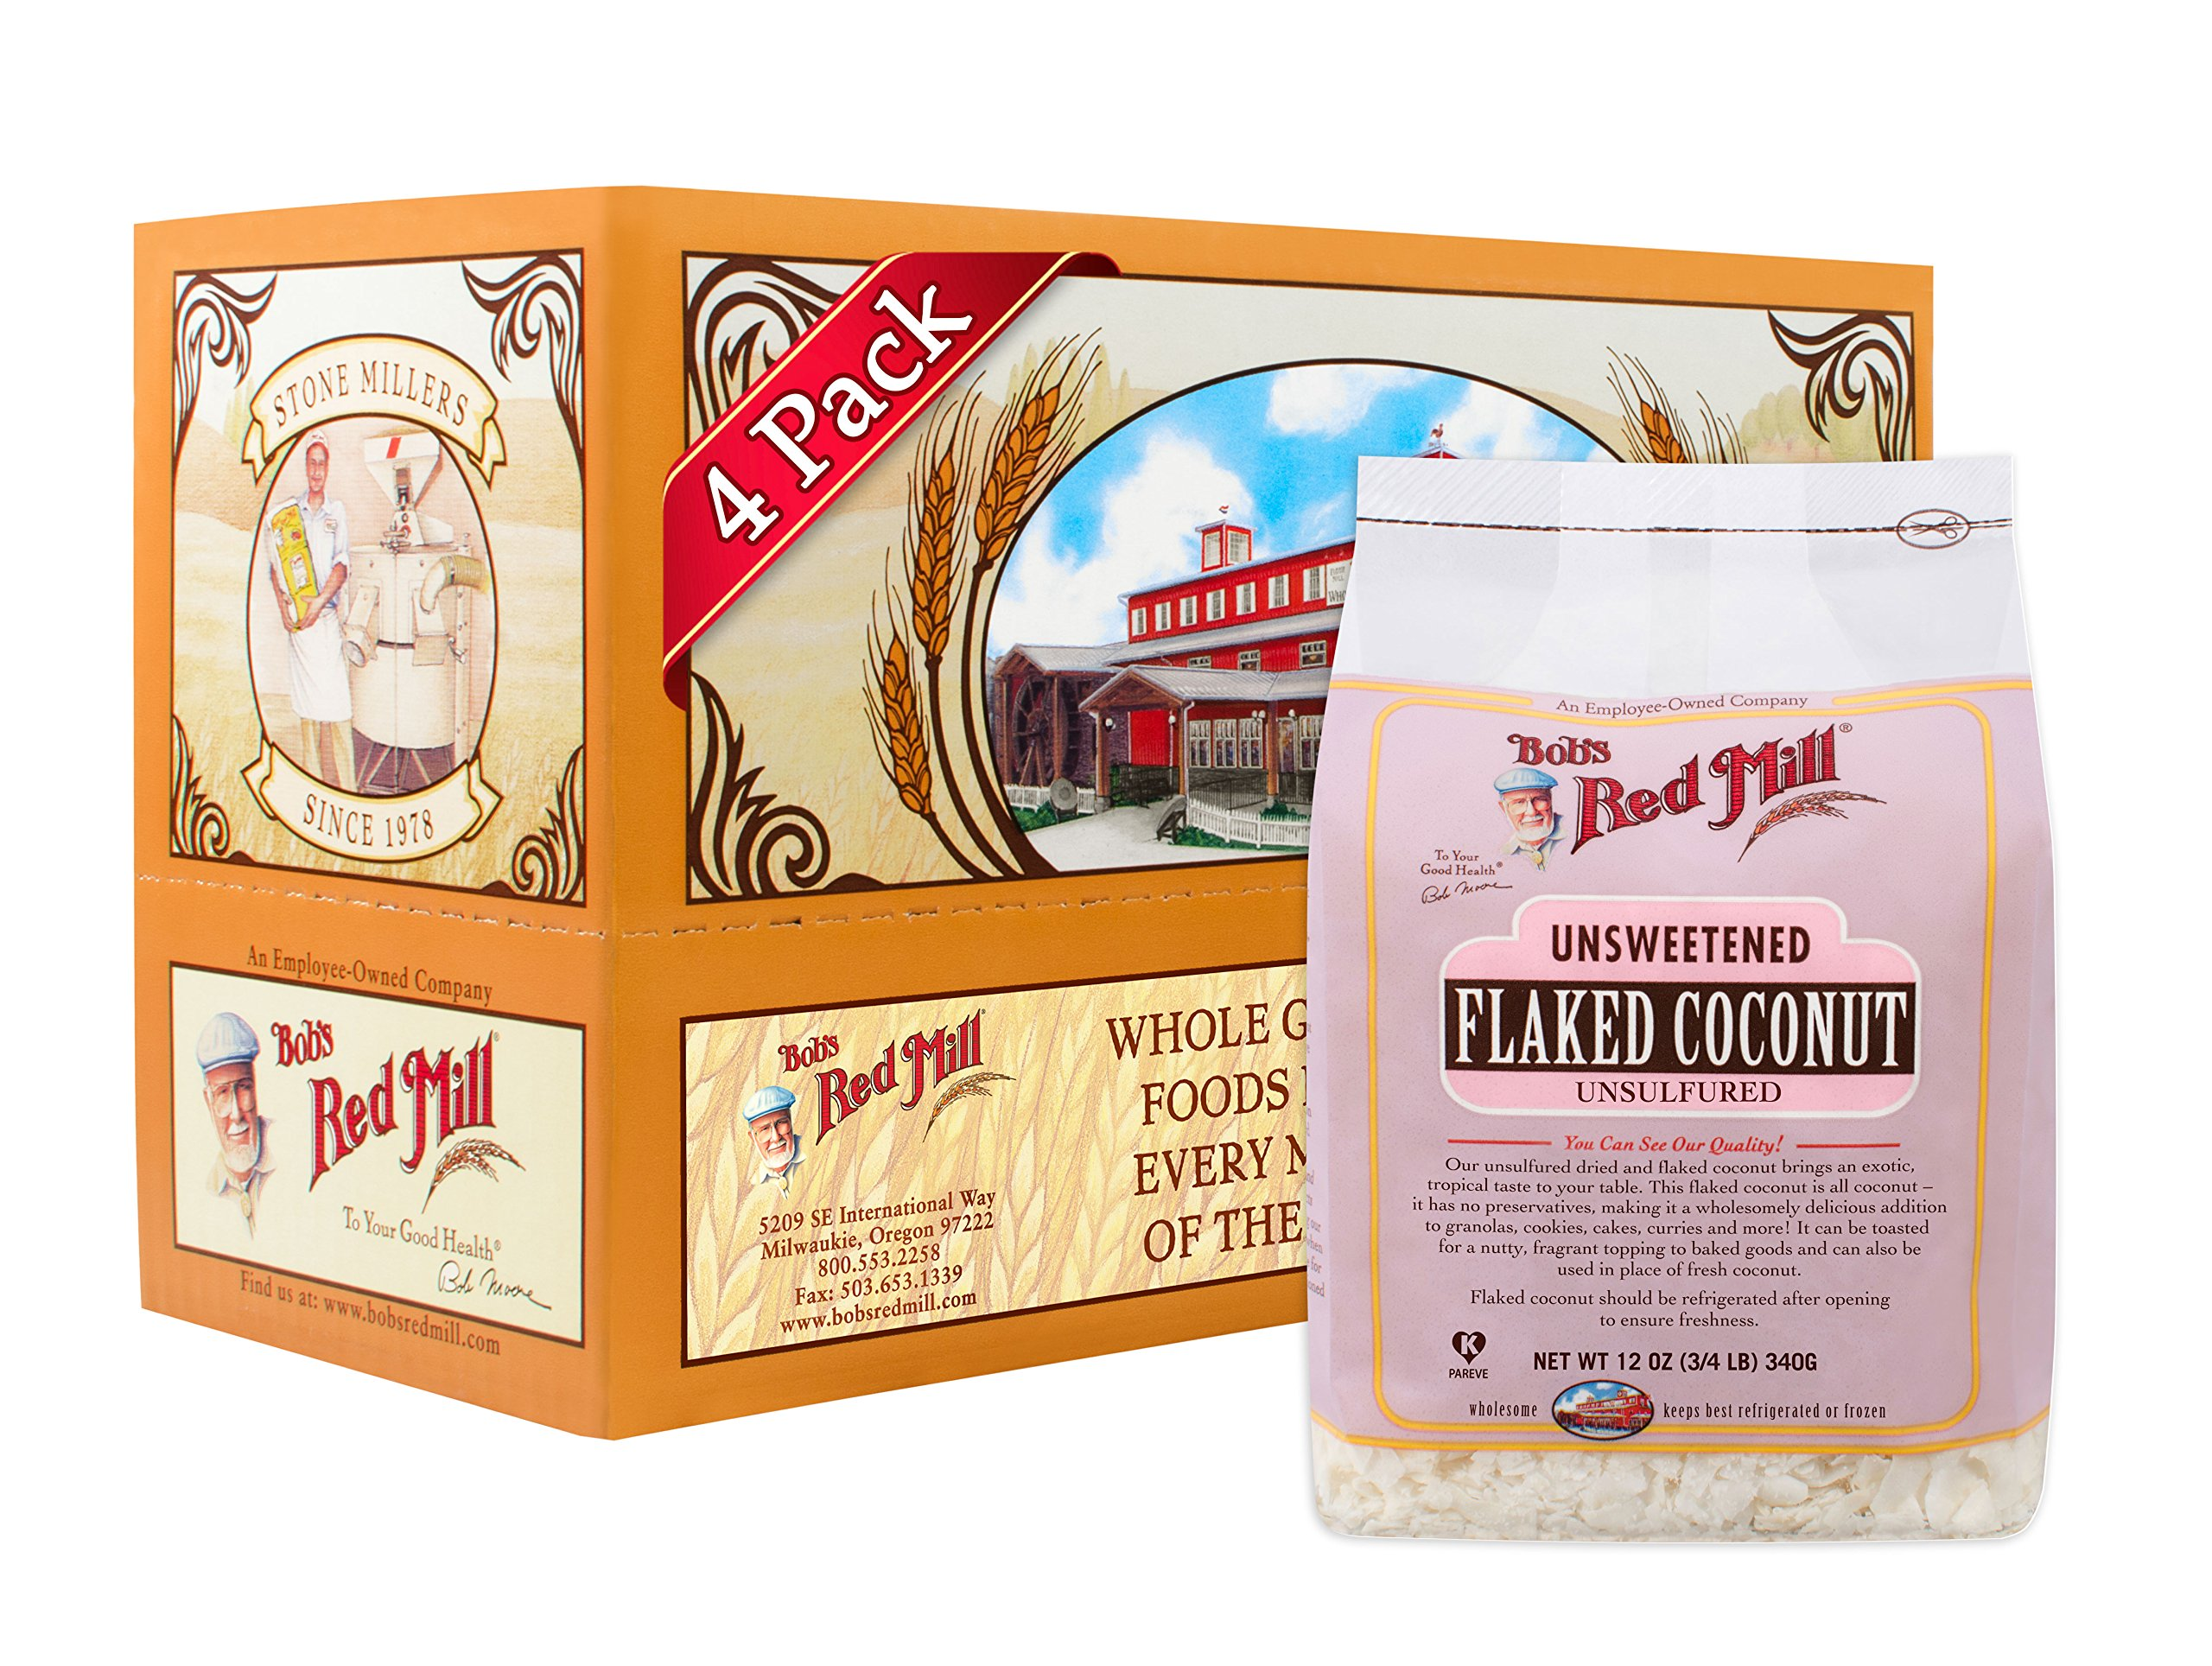 Bob's Red Mill Flaked Coconut (Unsweetened), 12 Ounce (Pack of 4)